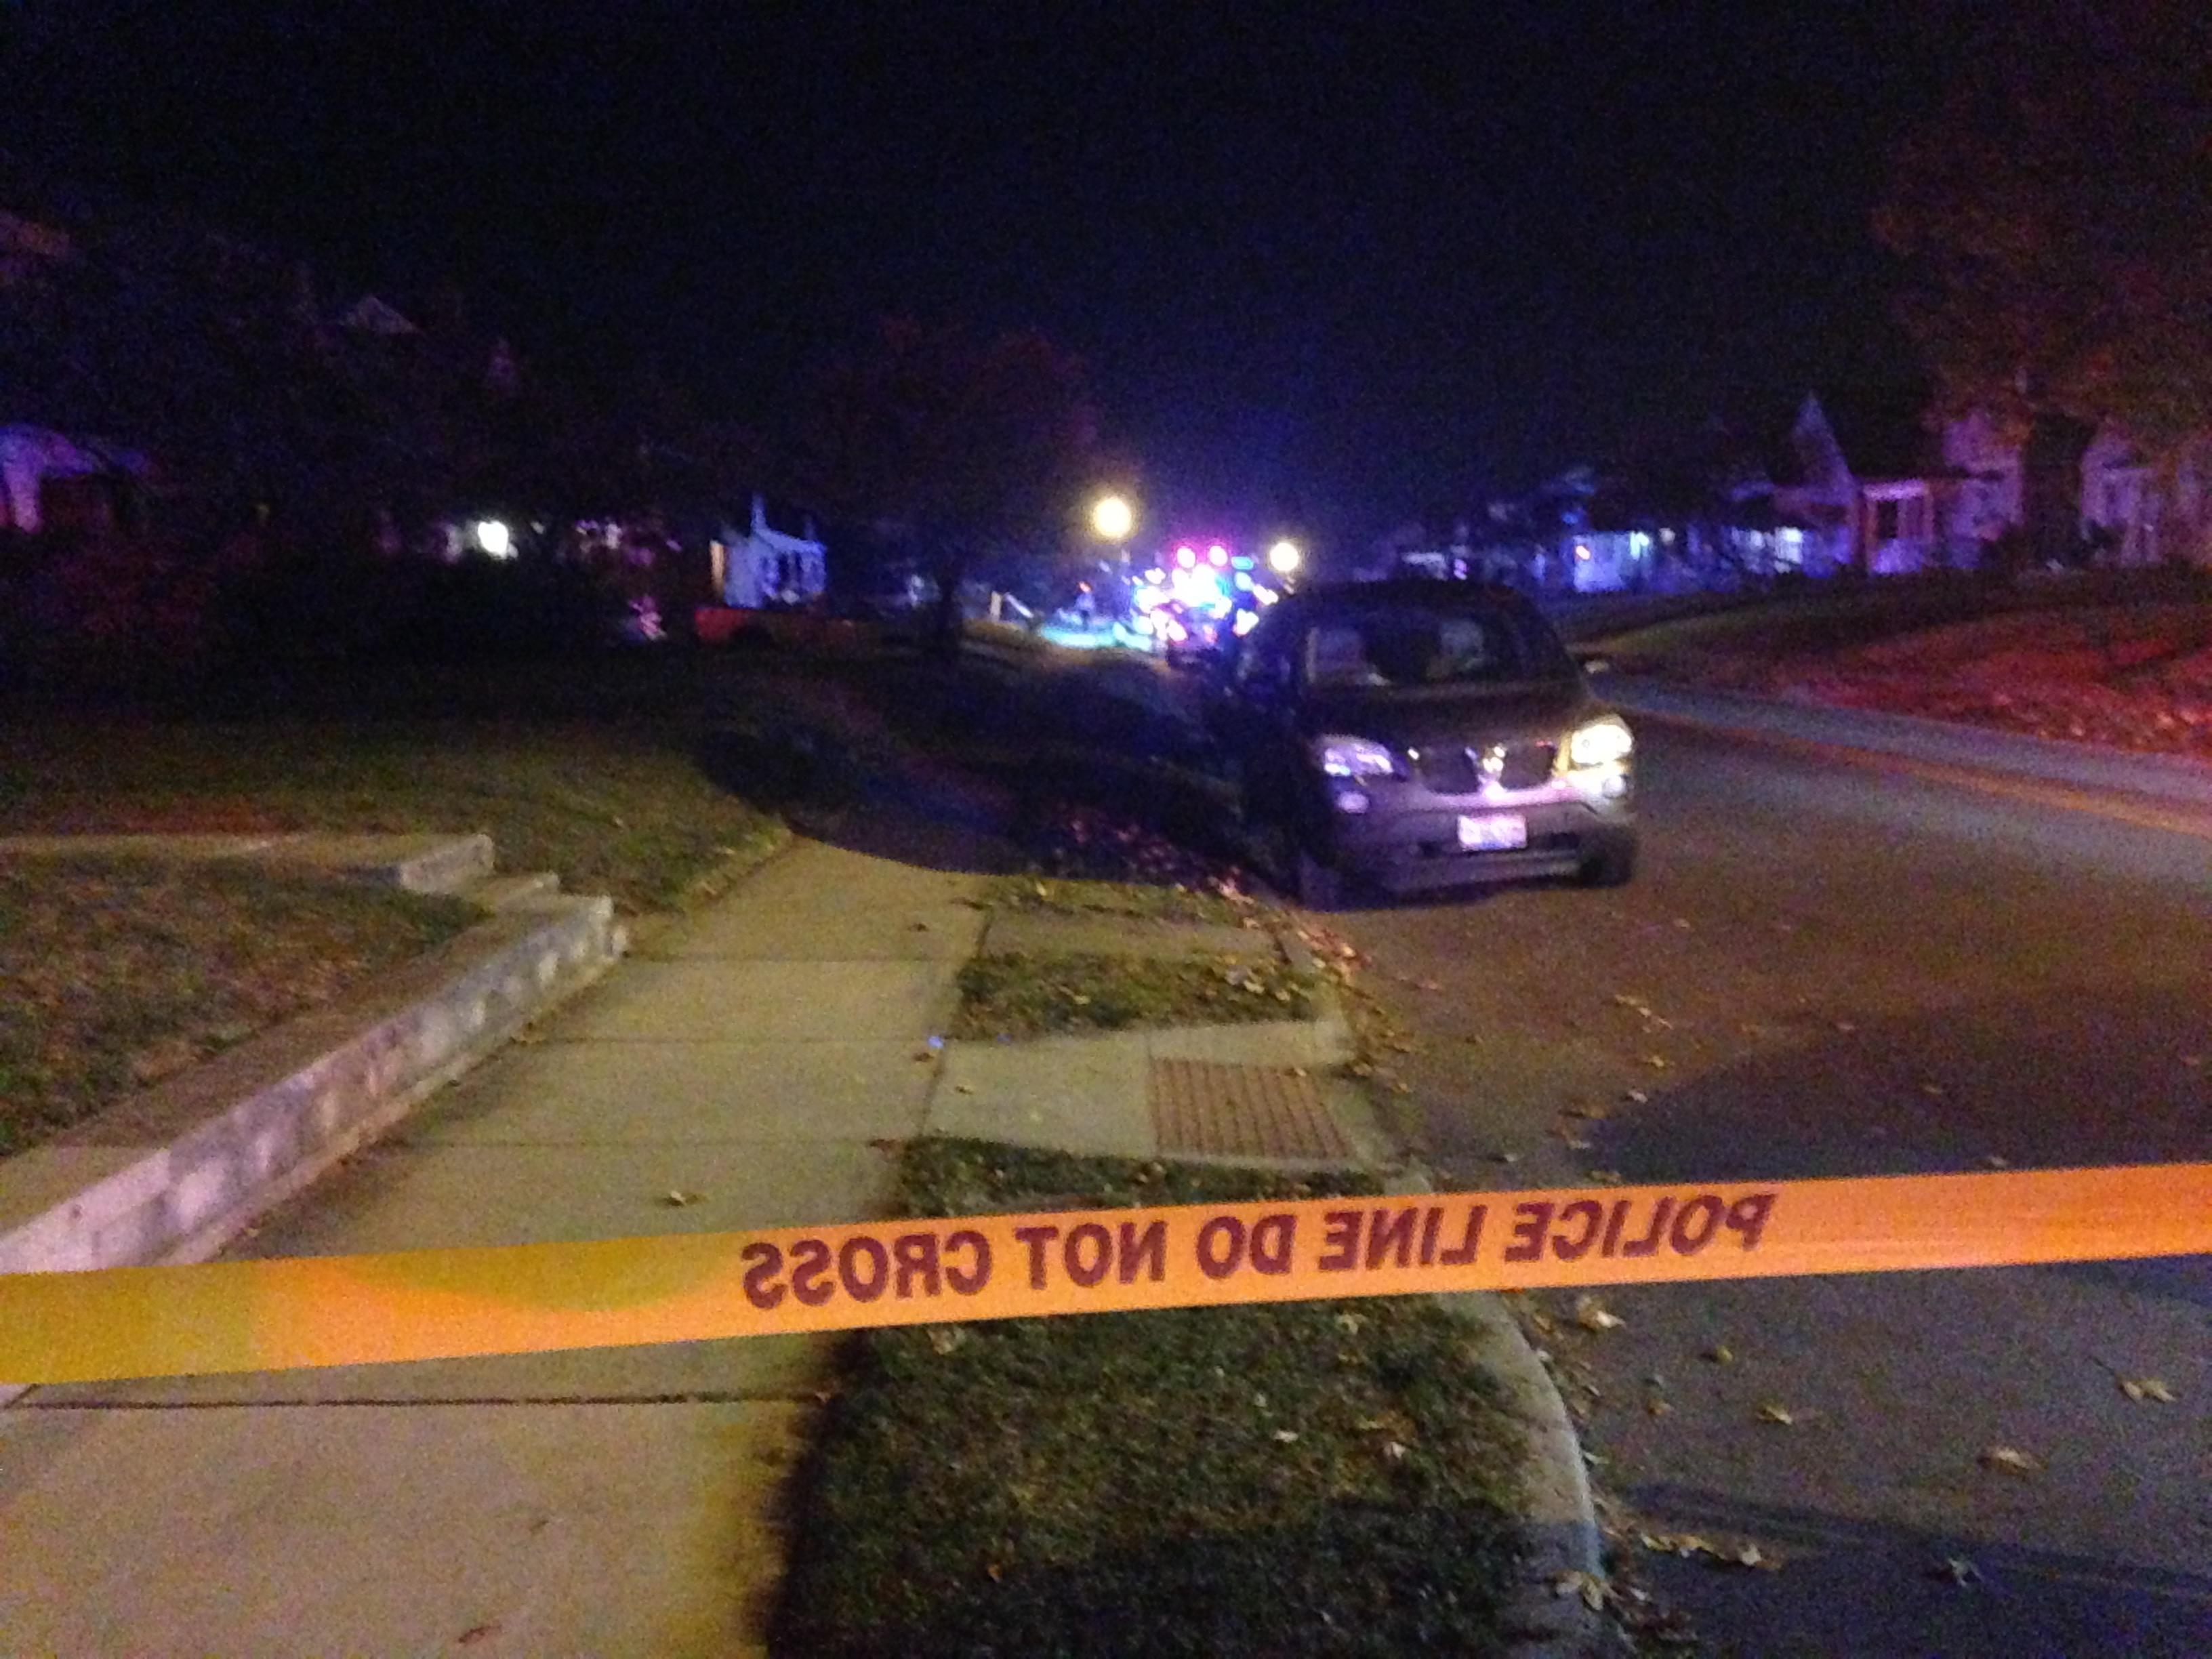 Police received a 911 call early Tuesday morning about a shooting on South Hague Avenue, and found three people shot at the home. One survived but is in critical condition. (WSYX/WTTE)